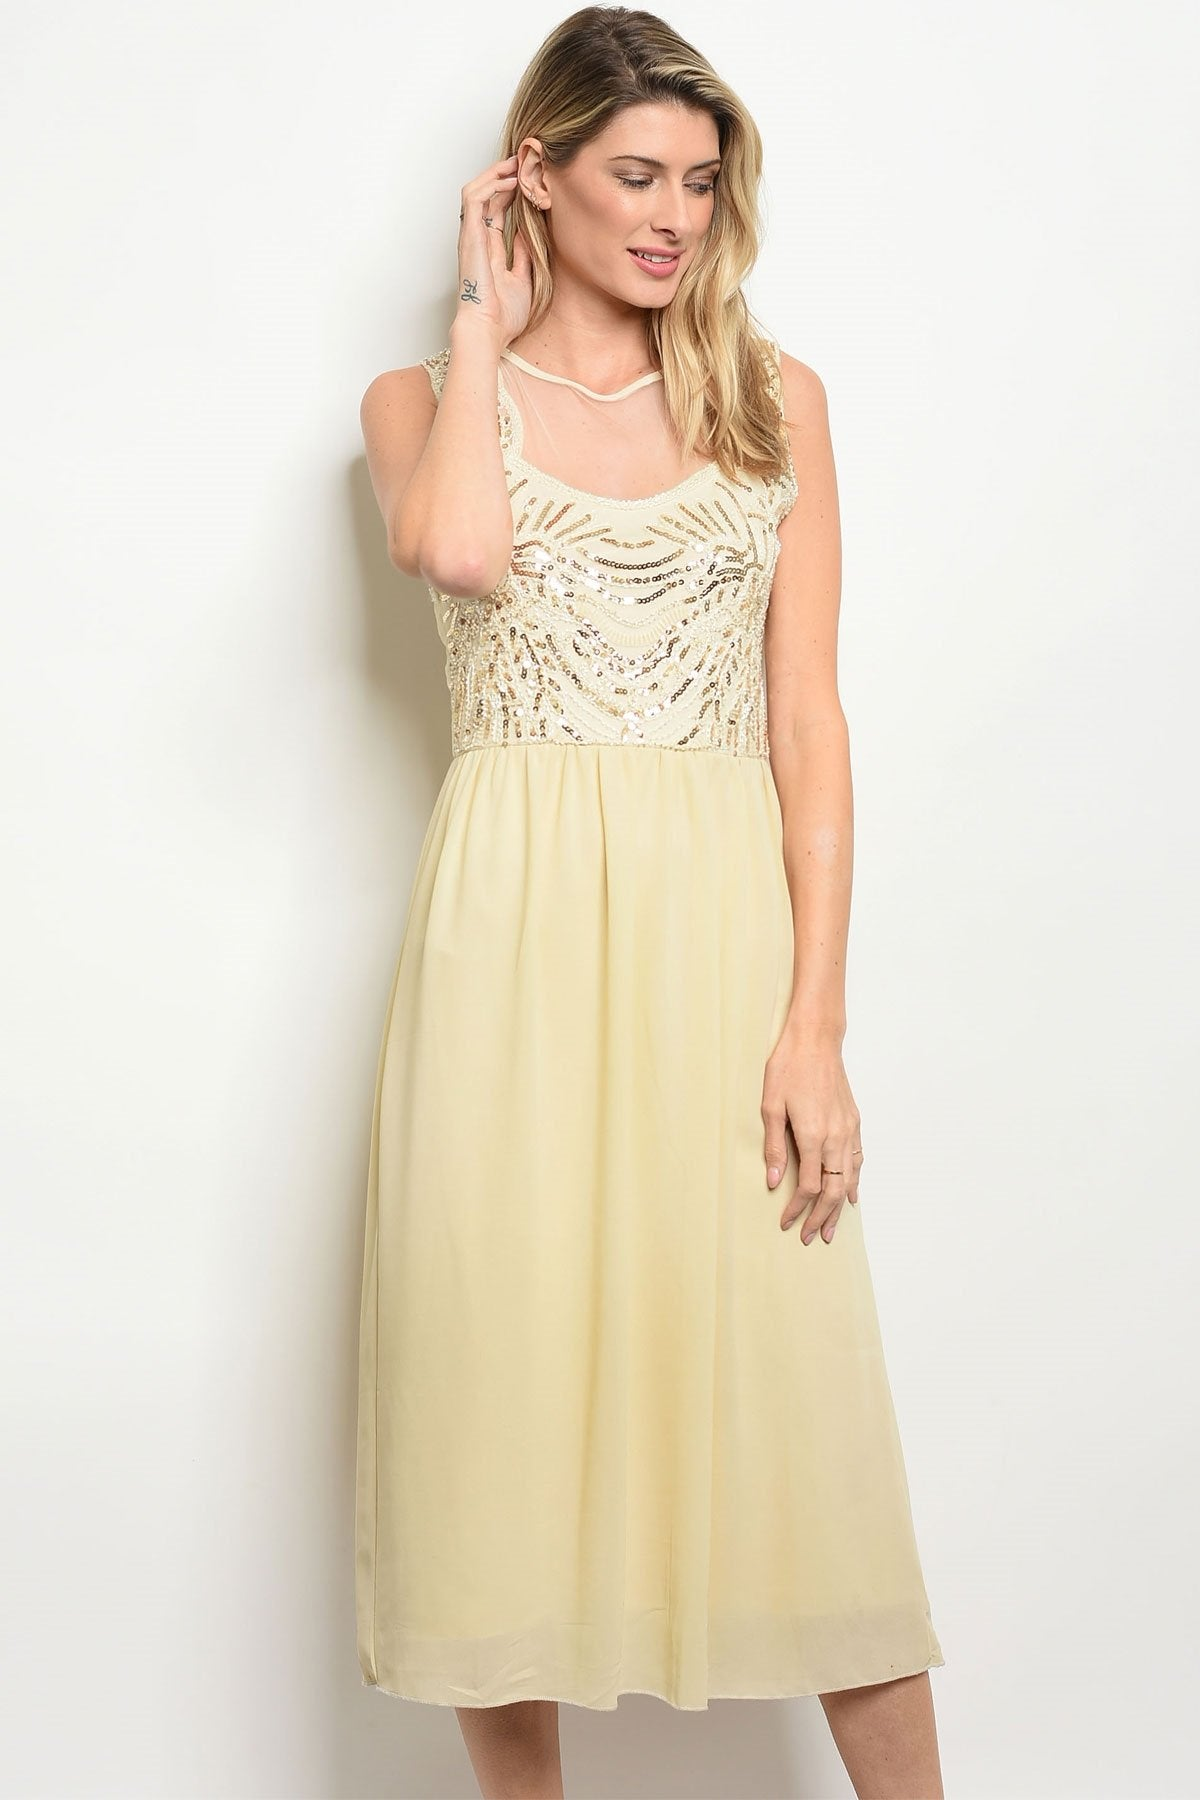 Womens Tan Gold With Sequins Dress - Manifest Best Boutique